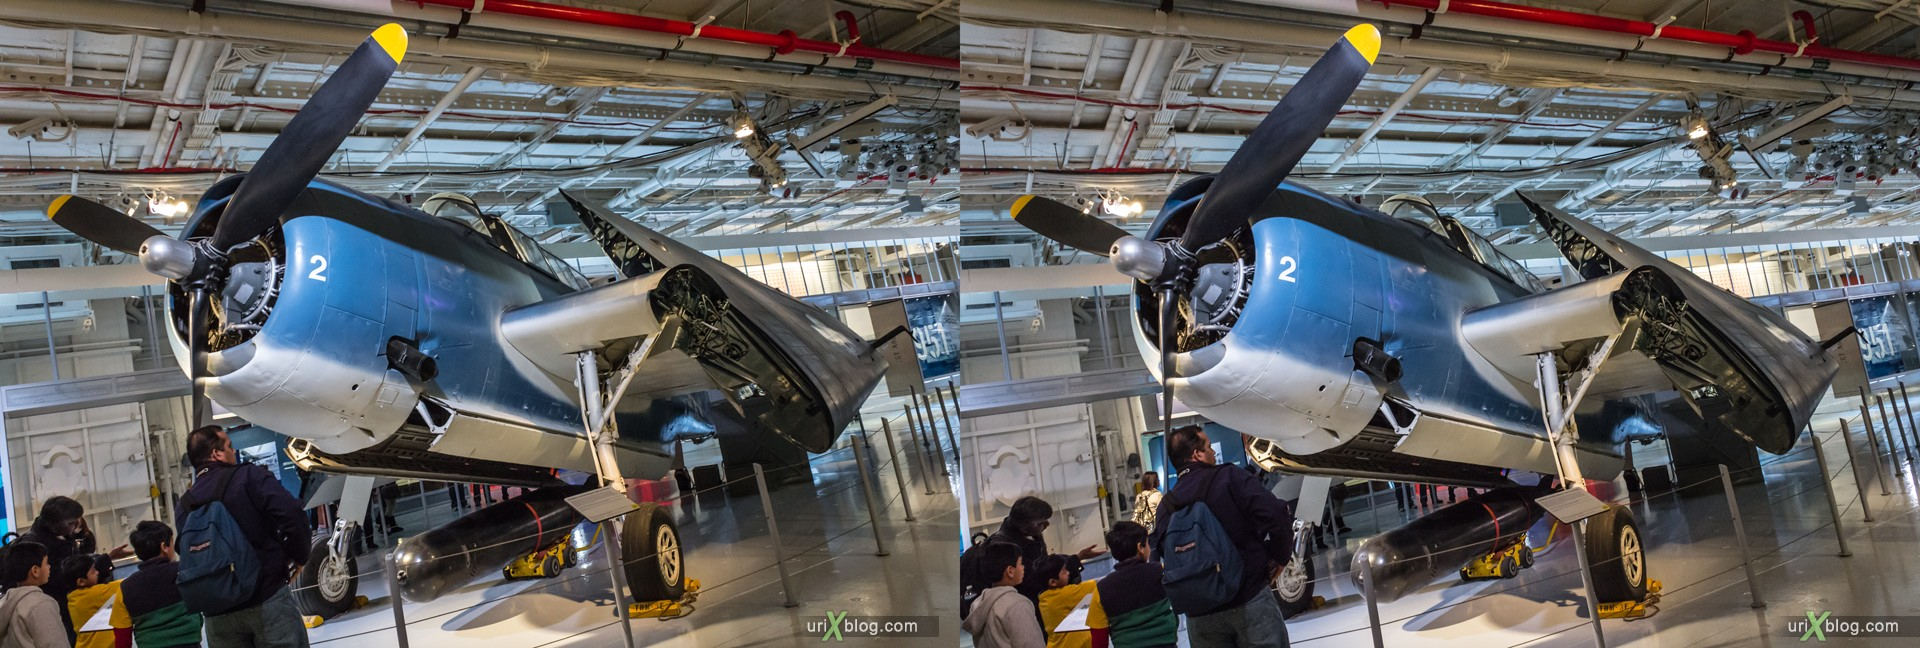 2013, USA, NYC, New York, aircraft carrier Intrepid museum, TBM-3 Avenger, sea, air, space, ship, submarine, aircraft, airplane, helicopter, military, 3D, stereo pair, cross-eyed, crossview, cross view stereo pair, stereoscopic